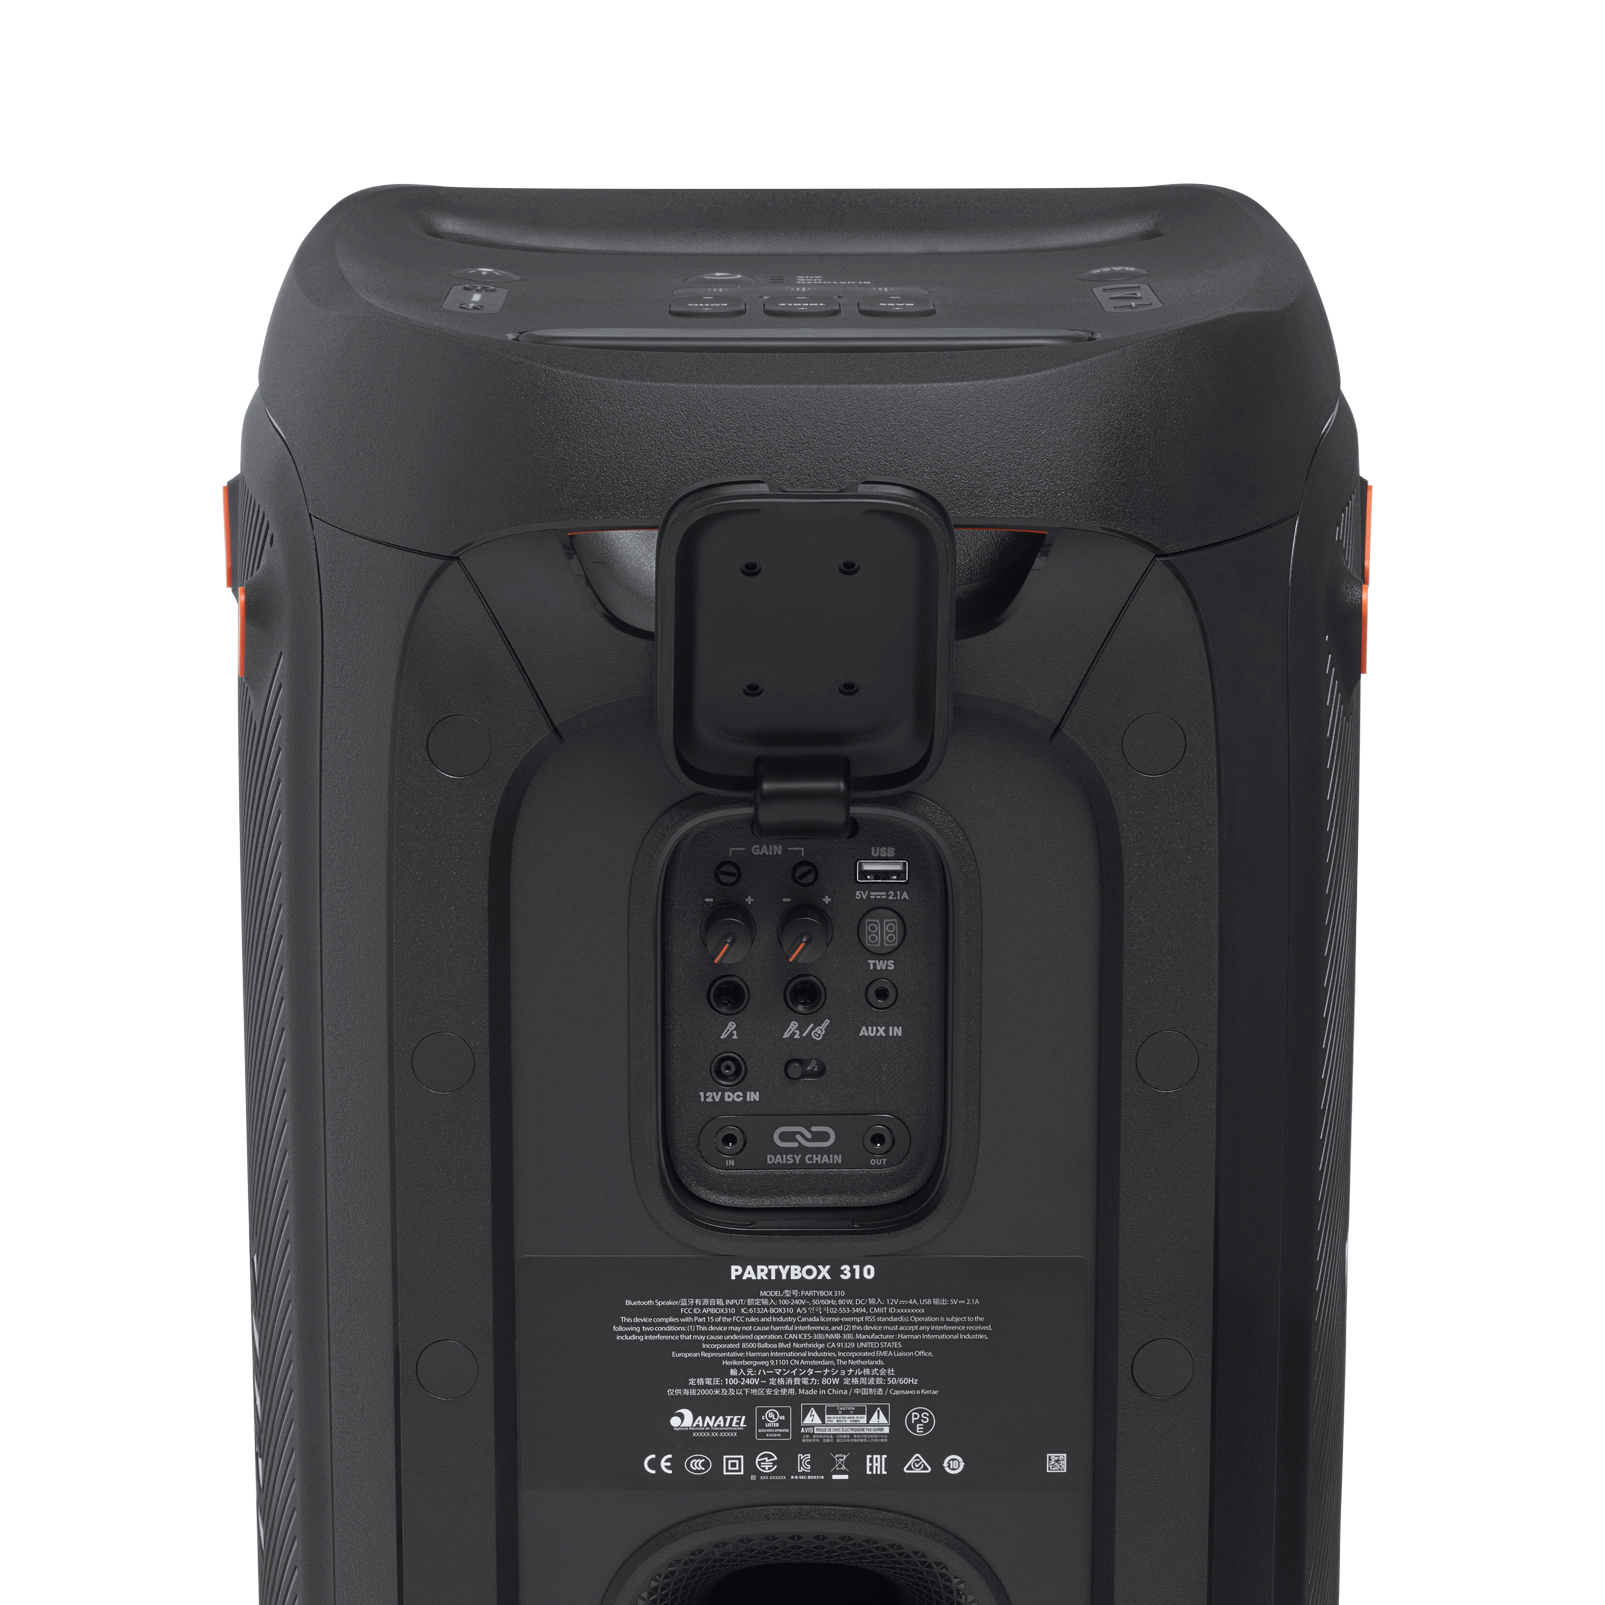 JBL Partybox 310 + Mic - Black - Portable party speaker with 240W powerful sound, built-in lightshow and wired mic - Detailshot 3